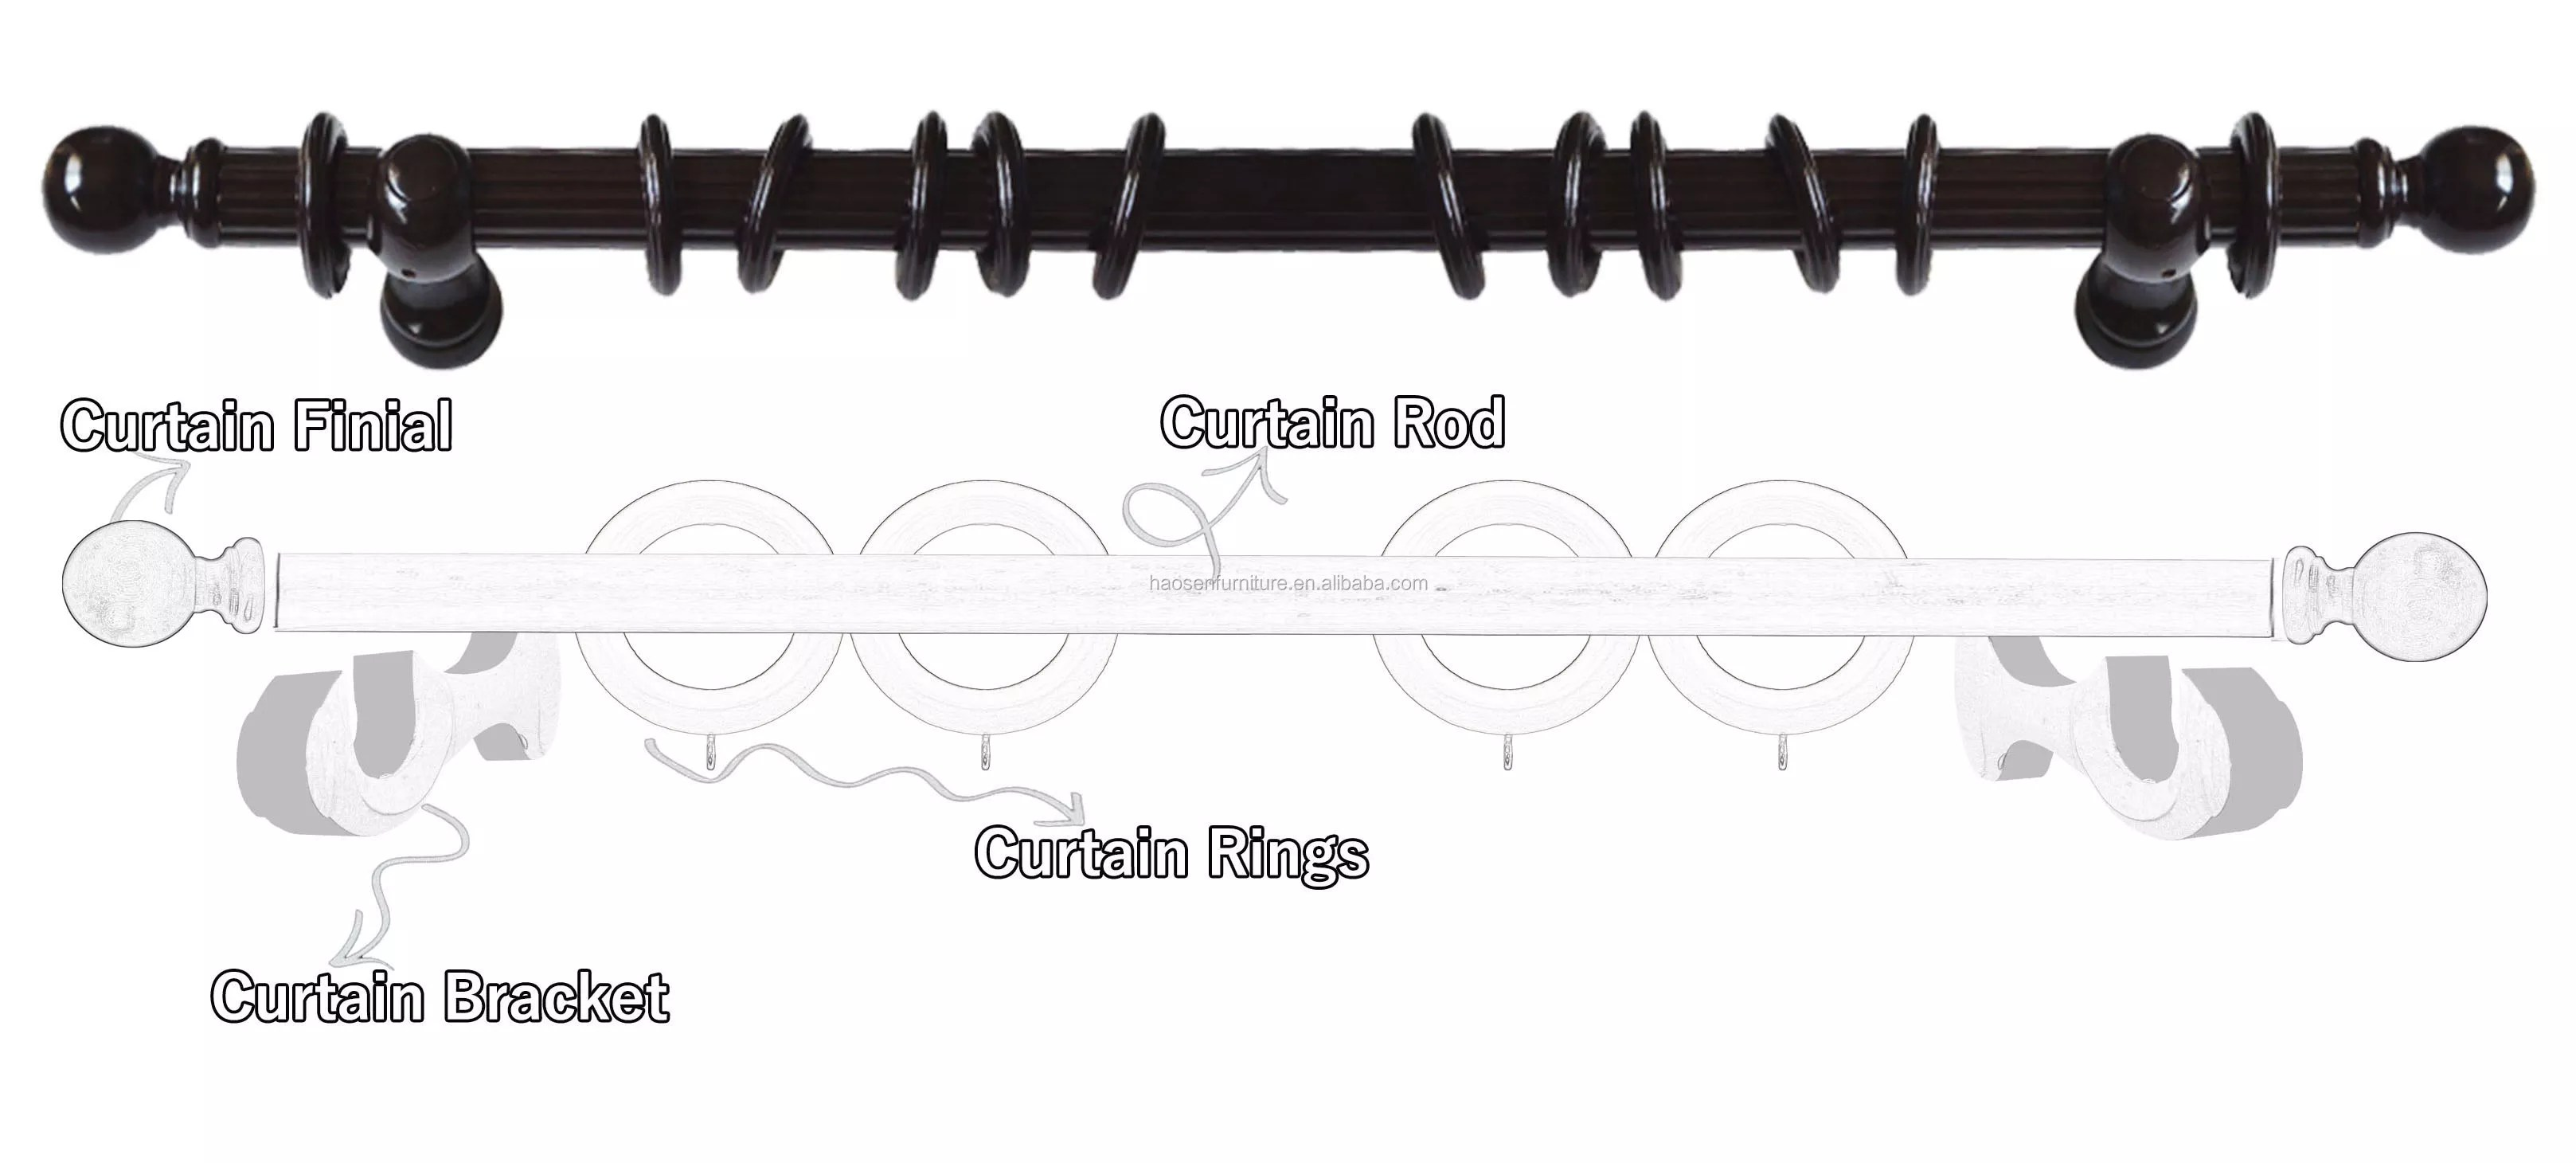 reeded curtain rod with accessories set